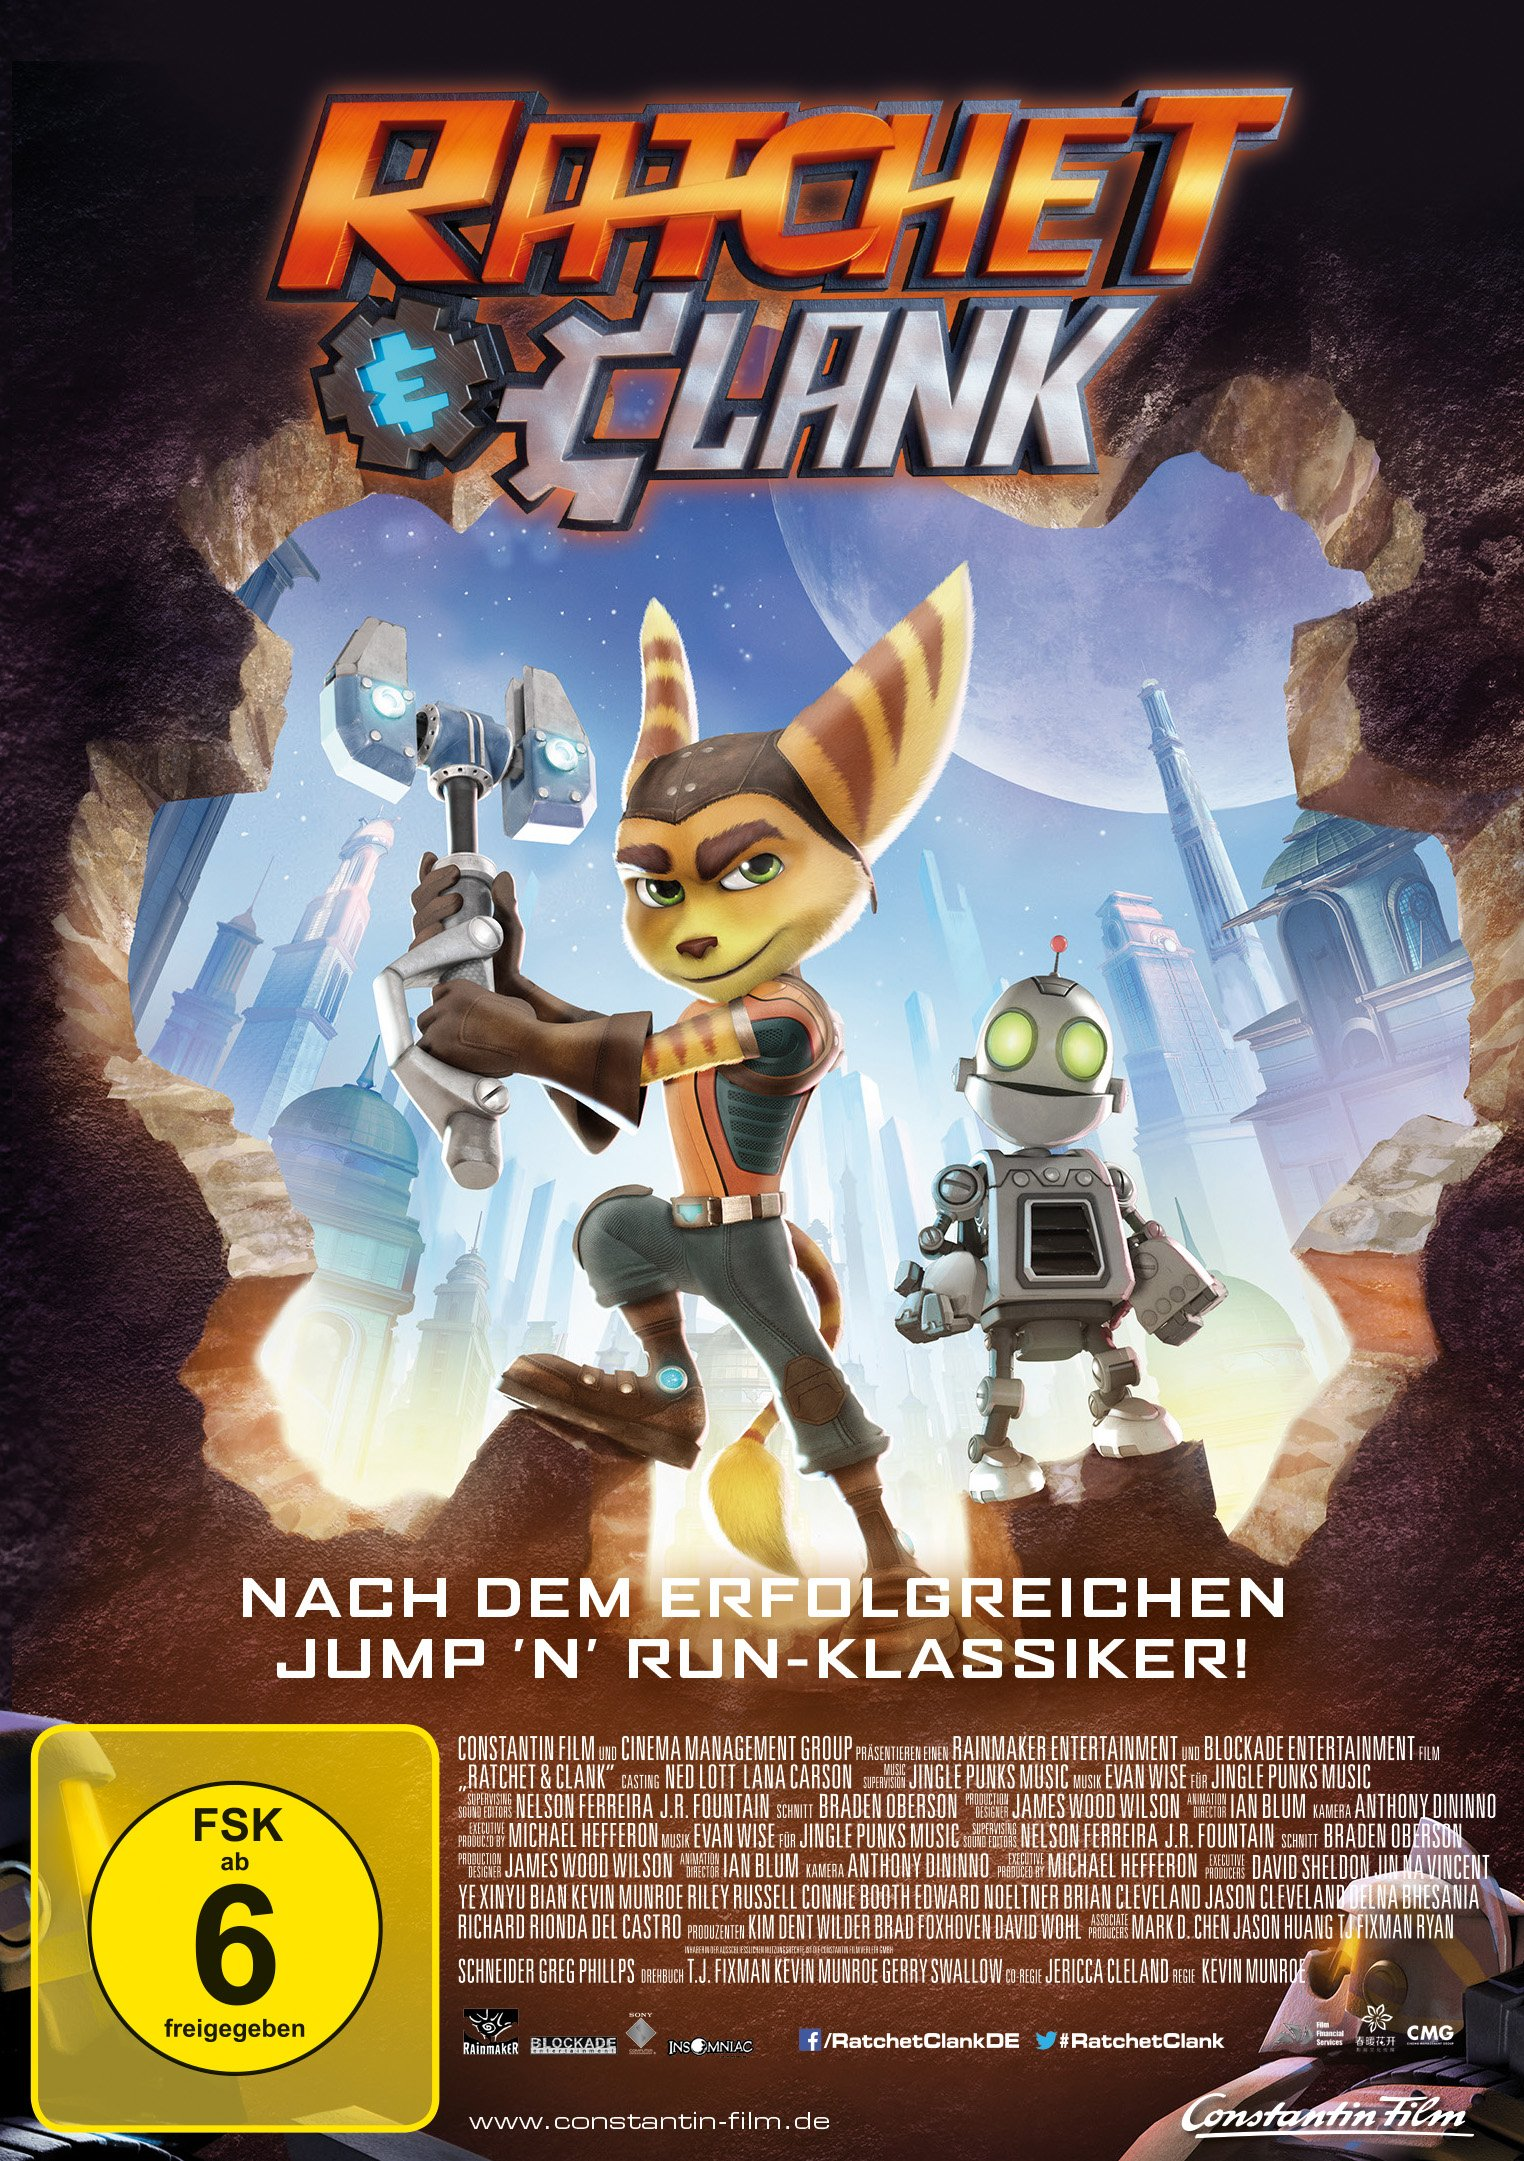 : Ratchet und Clank 2016 German 2016 Ac3 Bdrip x264-CoiNciDence